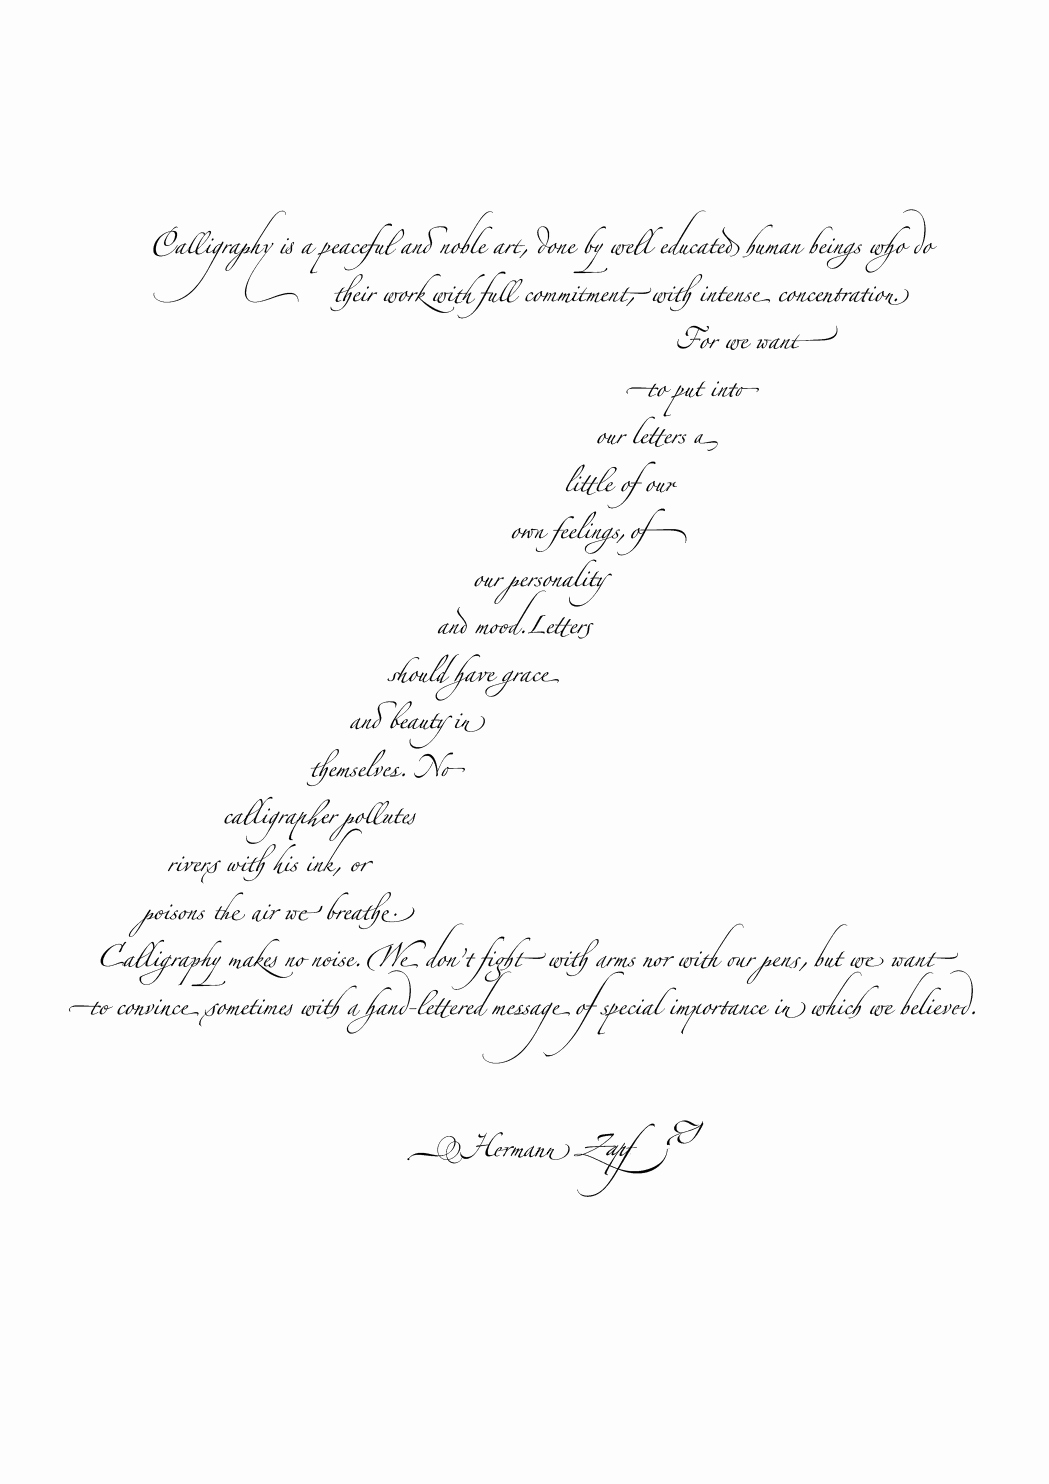 Commitment Letter for Work Beautiful Design Simon Griffee Time Light Movement and Distance